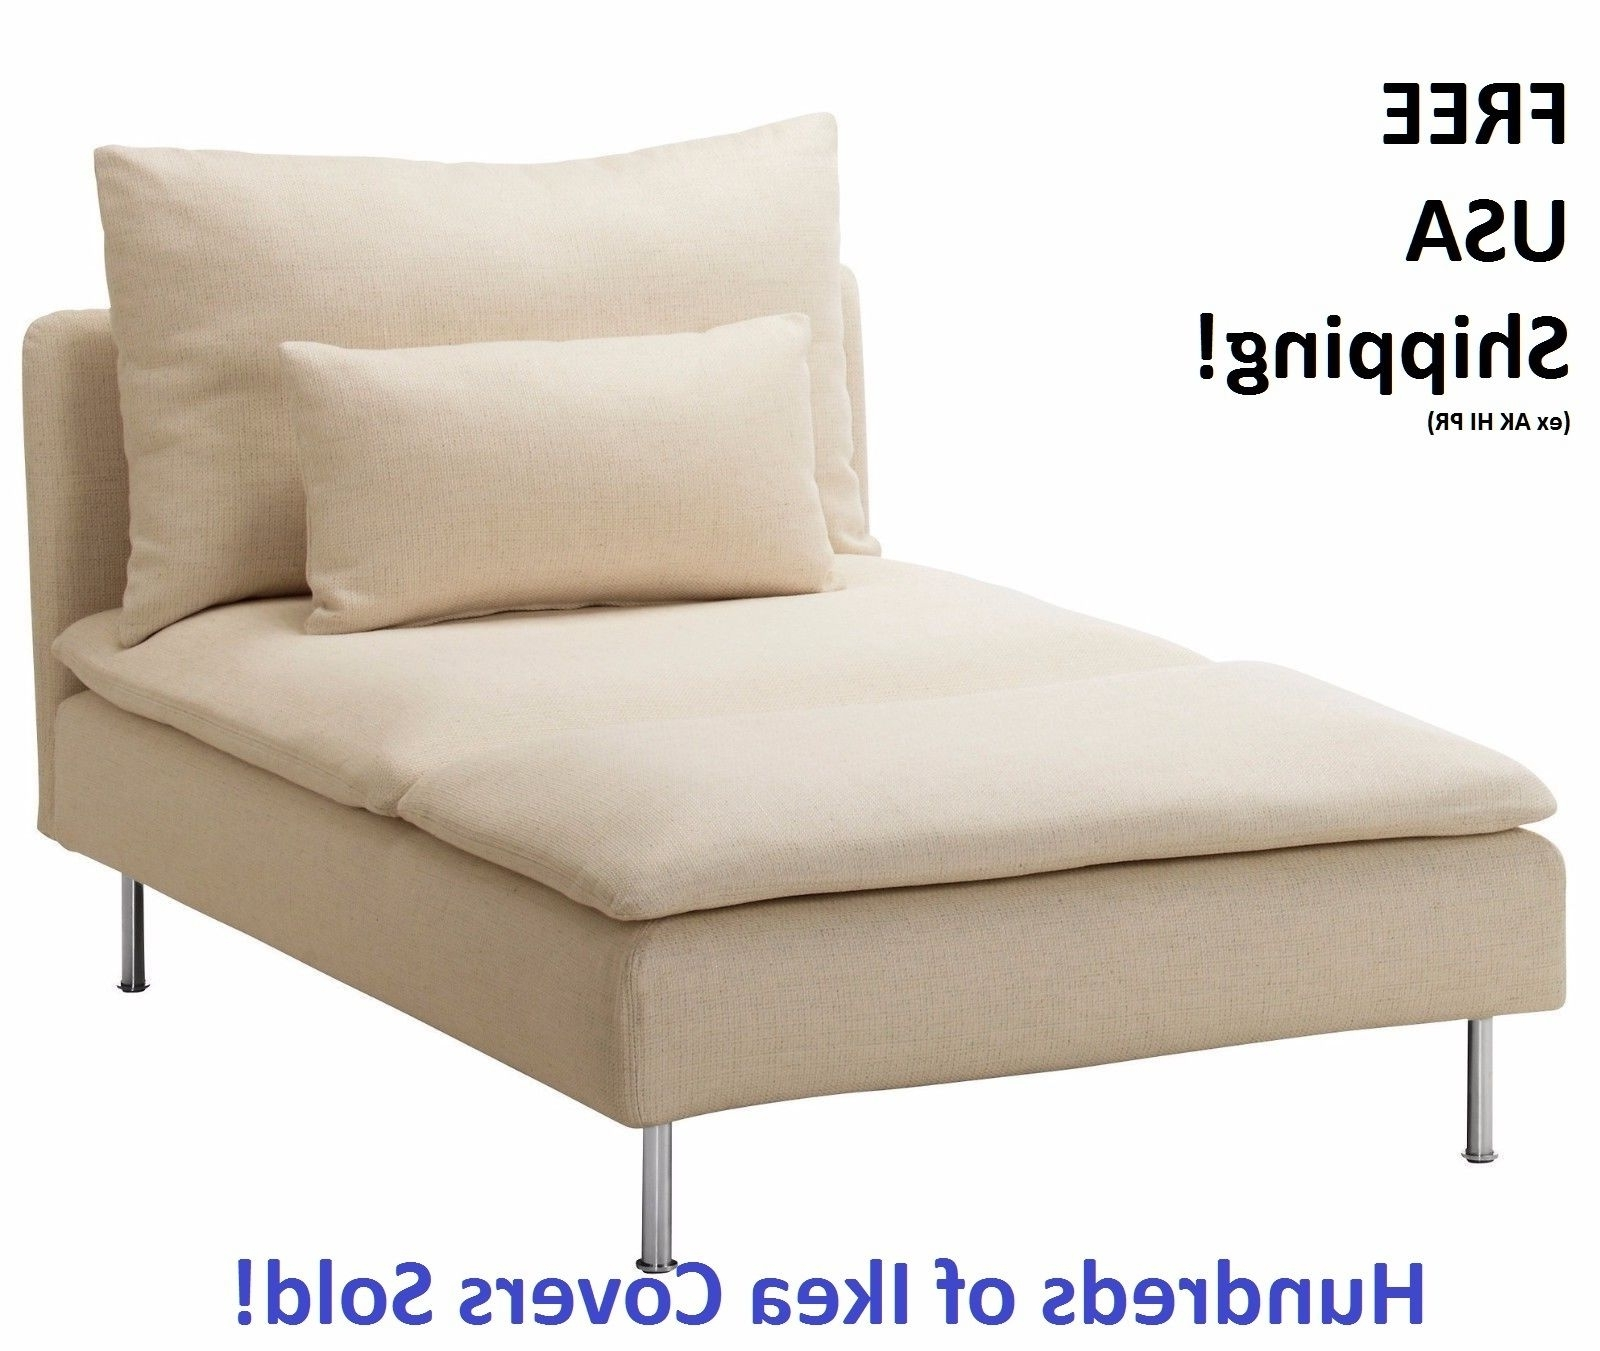 Chaise Lounge Slipcovers Pertaining To Widely Used Chaise Lounge Slipcover (View 9 of 15)